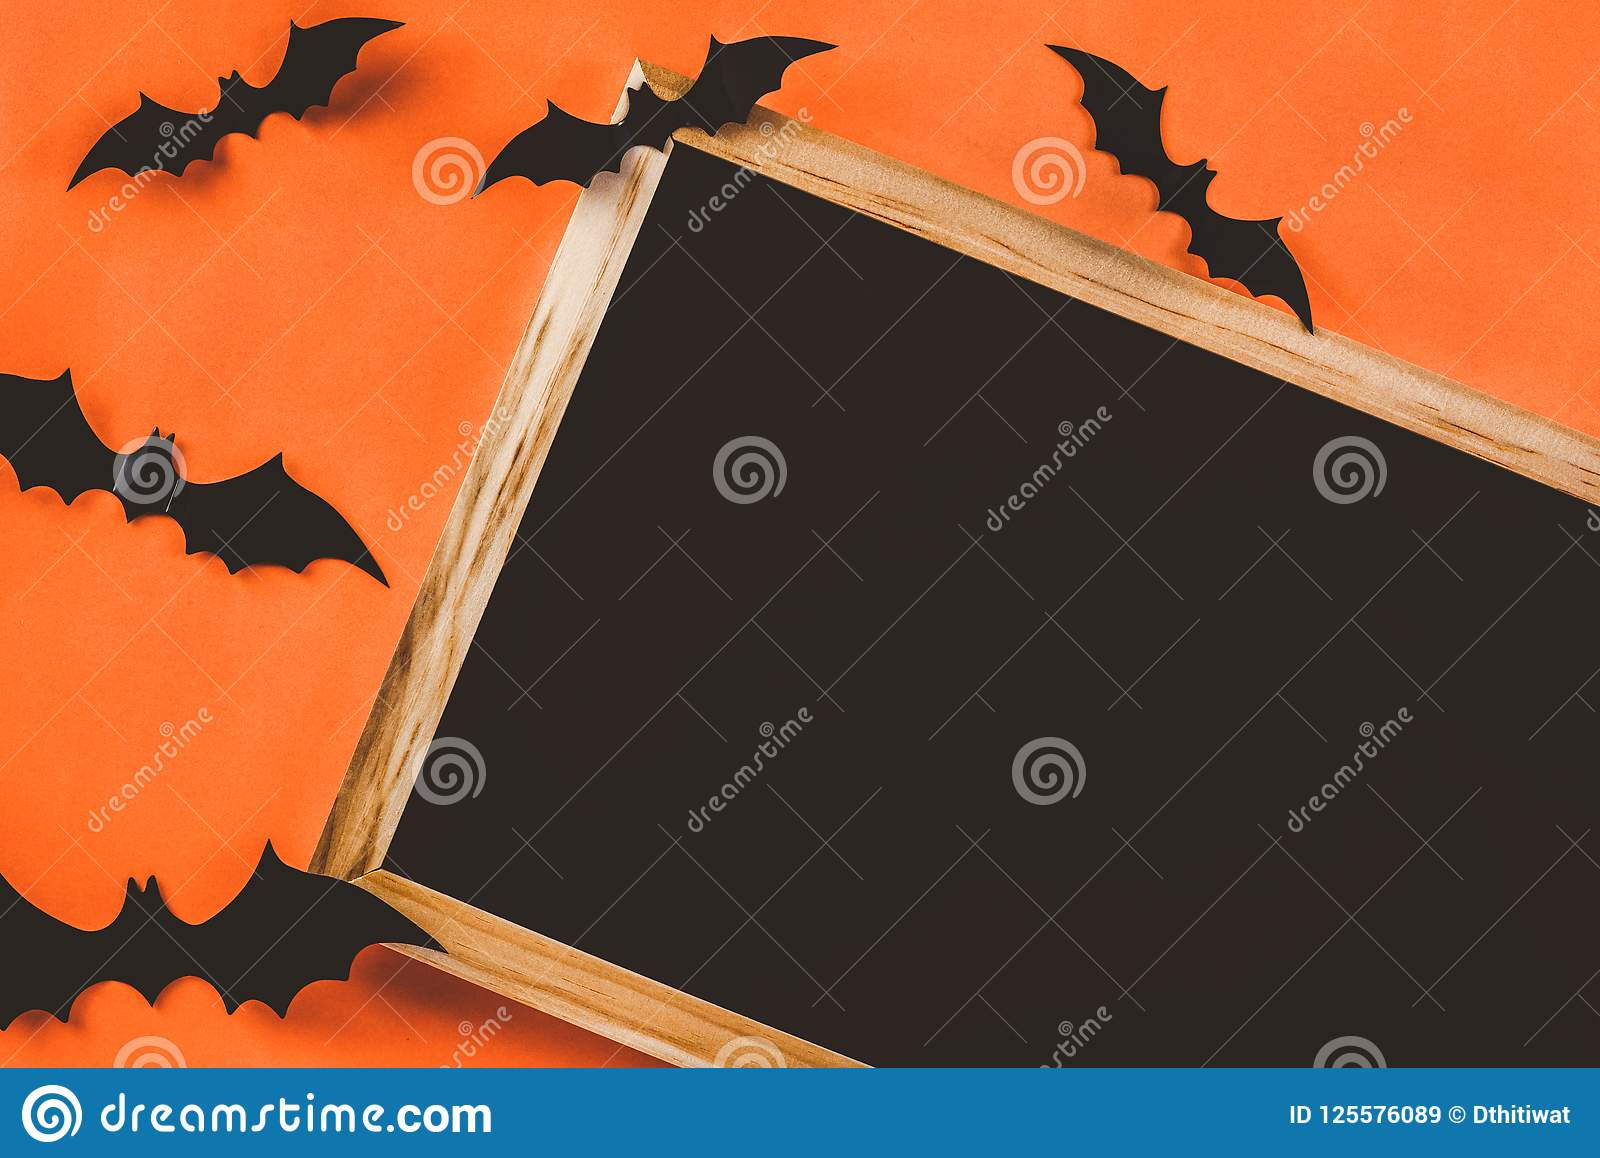 Blank Slate Decorate With Bats Stock Image - Image of design ... on how to draw a bat, how to dry a bat, how to create a bat, how to wrap a bat, how to build a bat, how to identify a bat, how to cook a bat, how to cut a bat, how to paint a bat, how to buy a bat, how to clean a bat, how to make a bat,